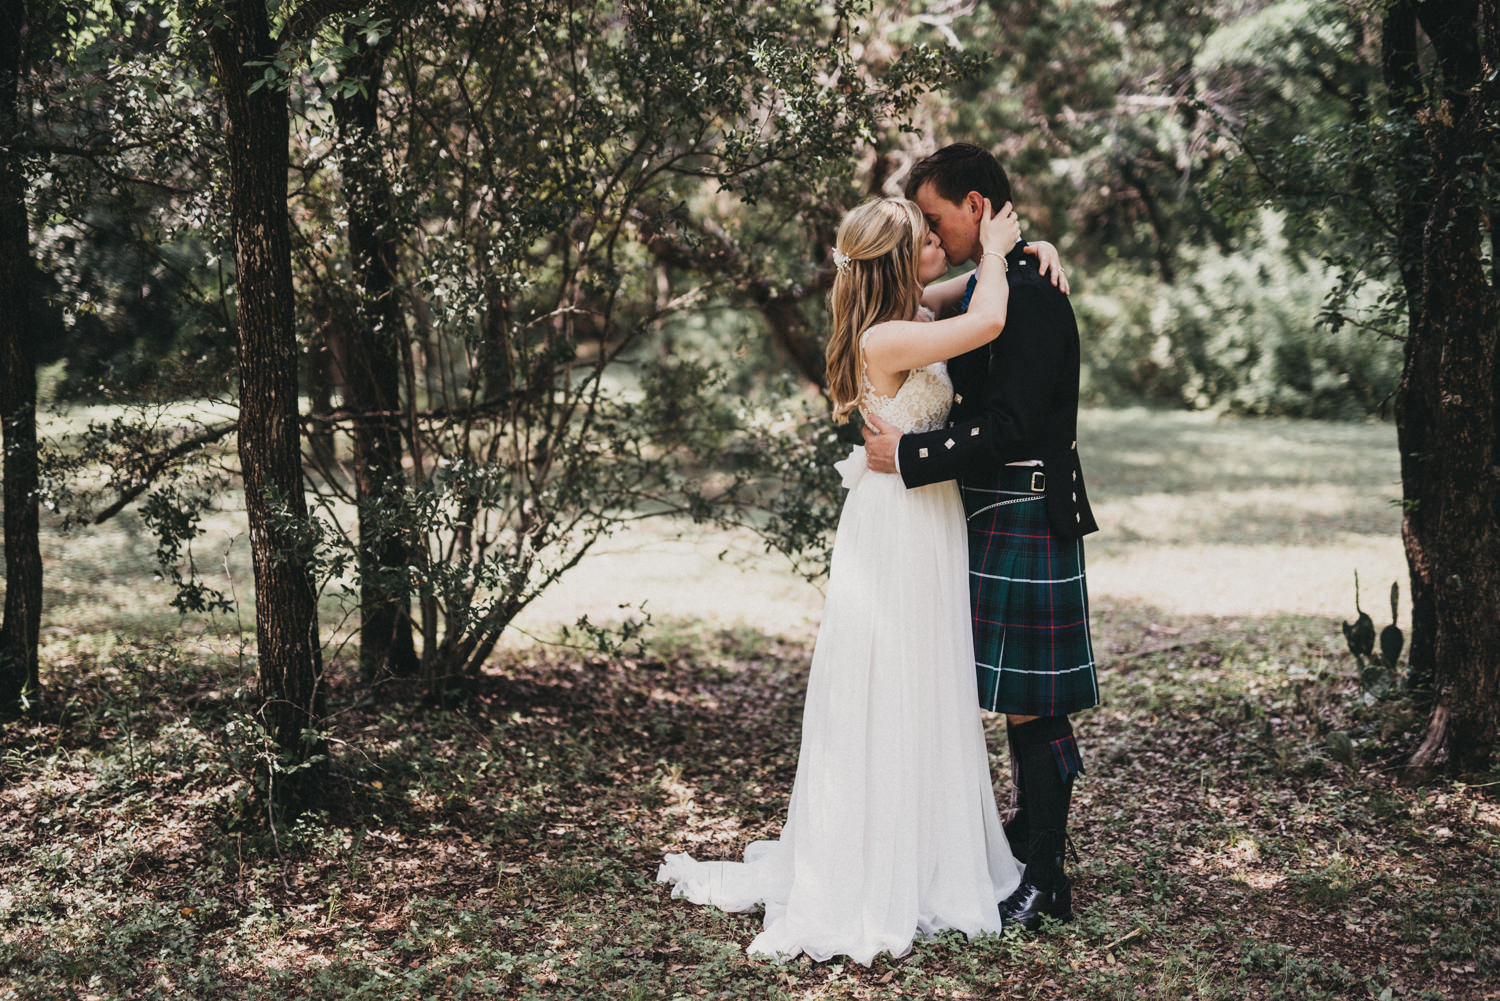 Austin Wedding Photographer Donny Tidmore